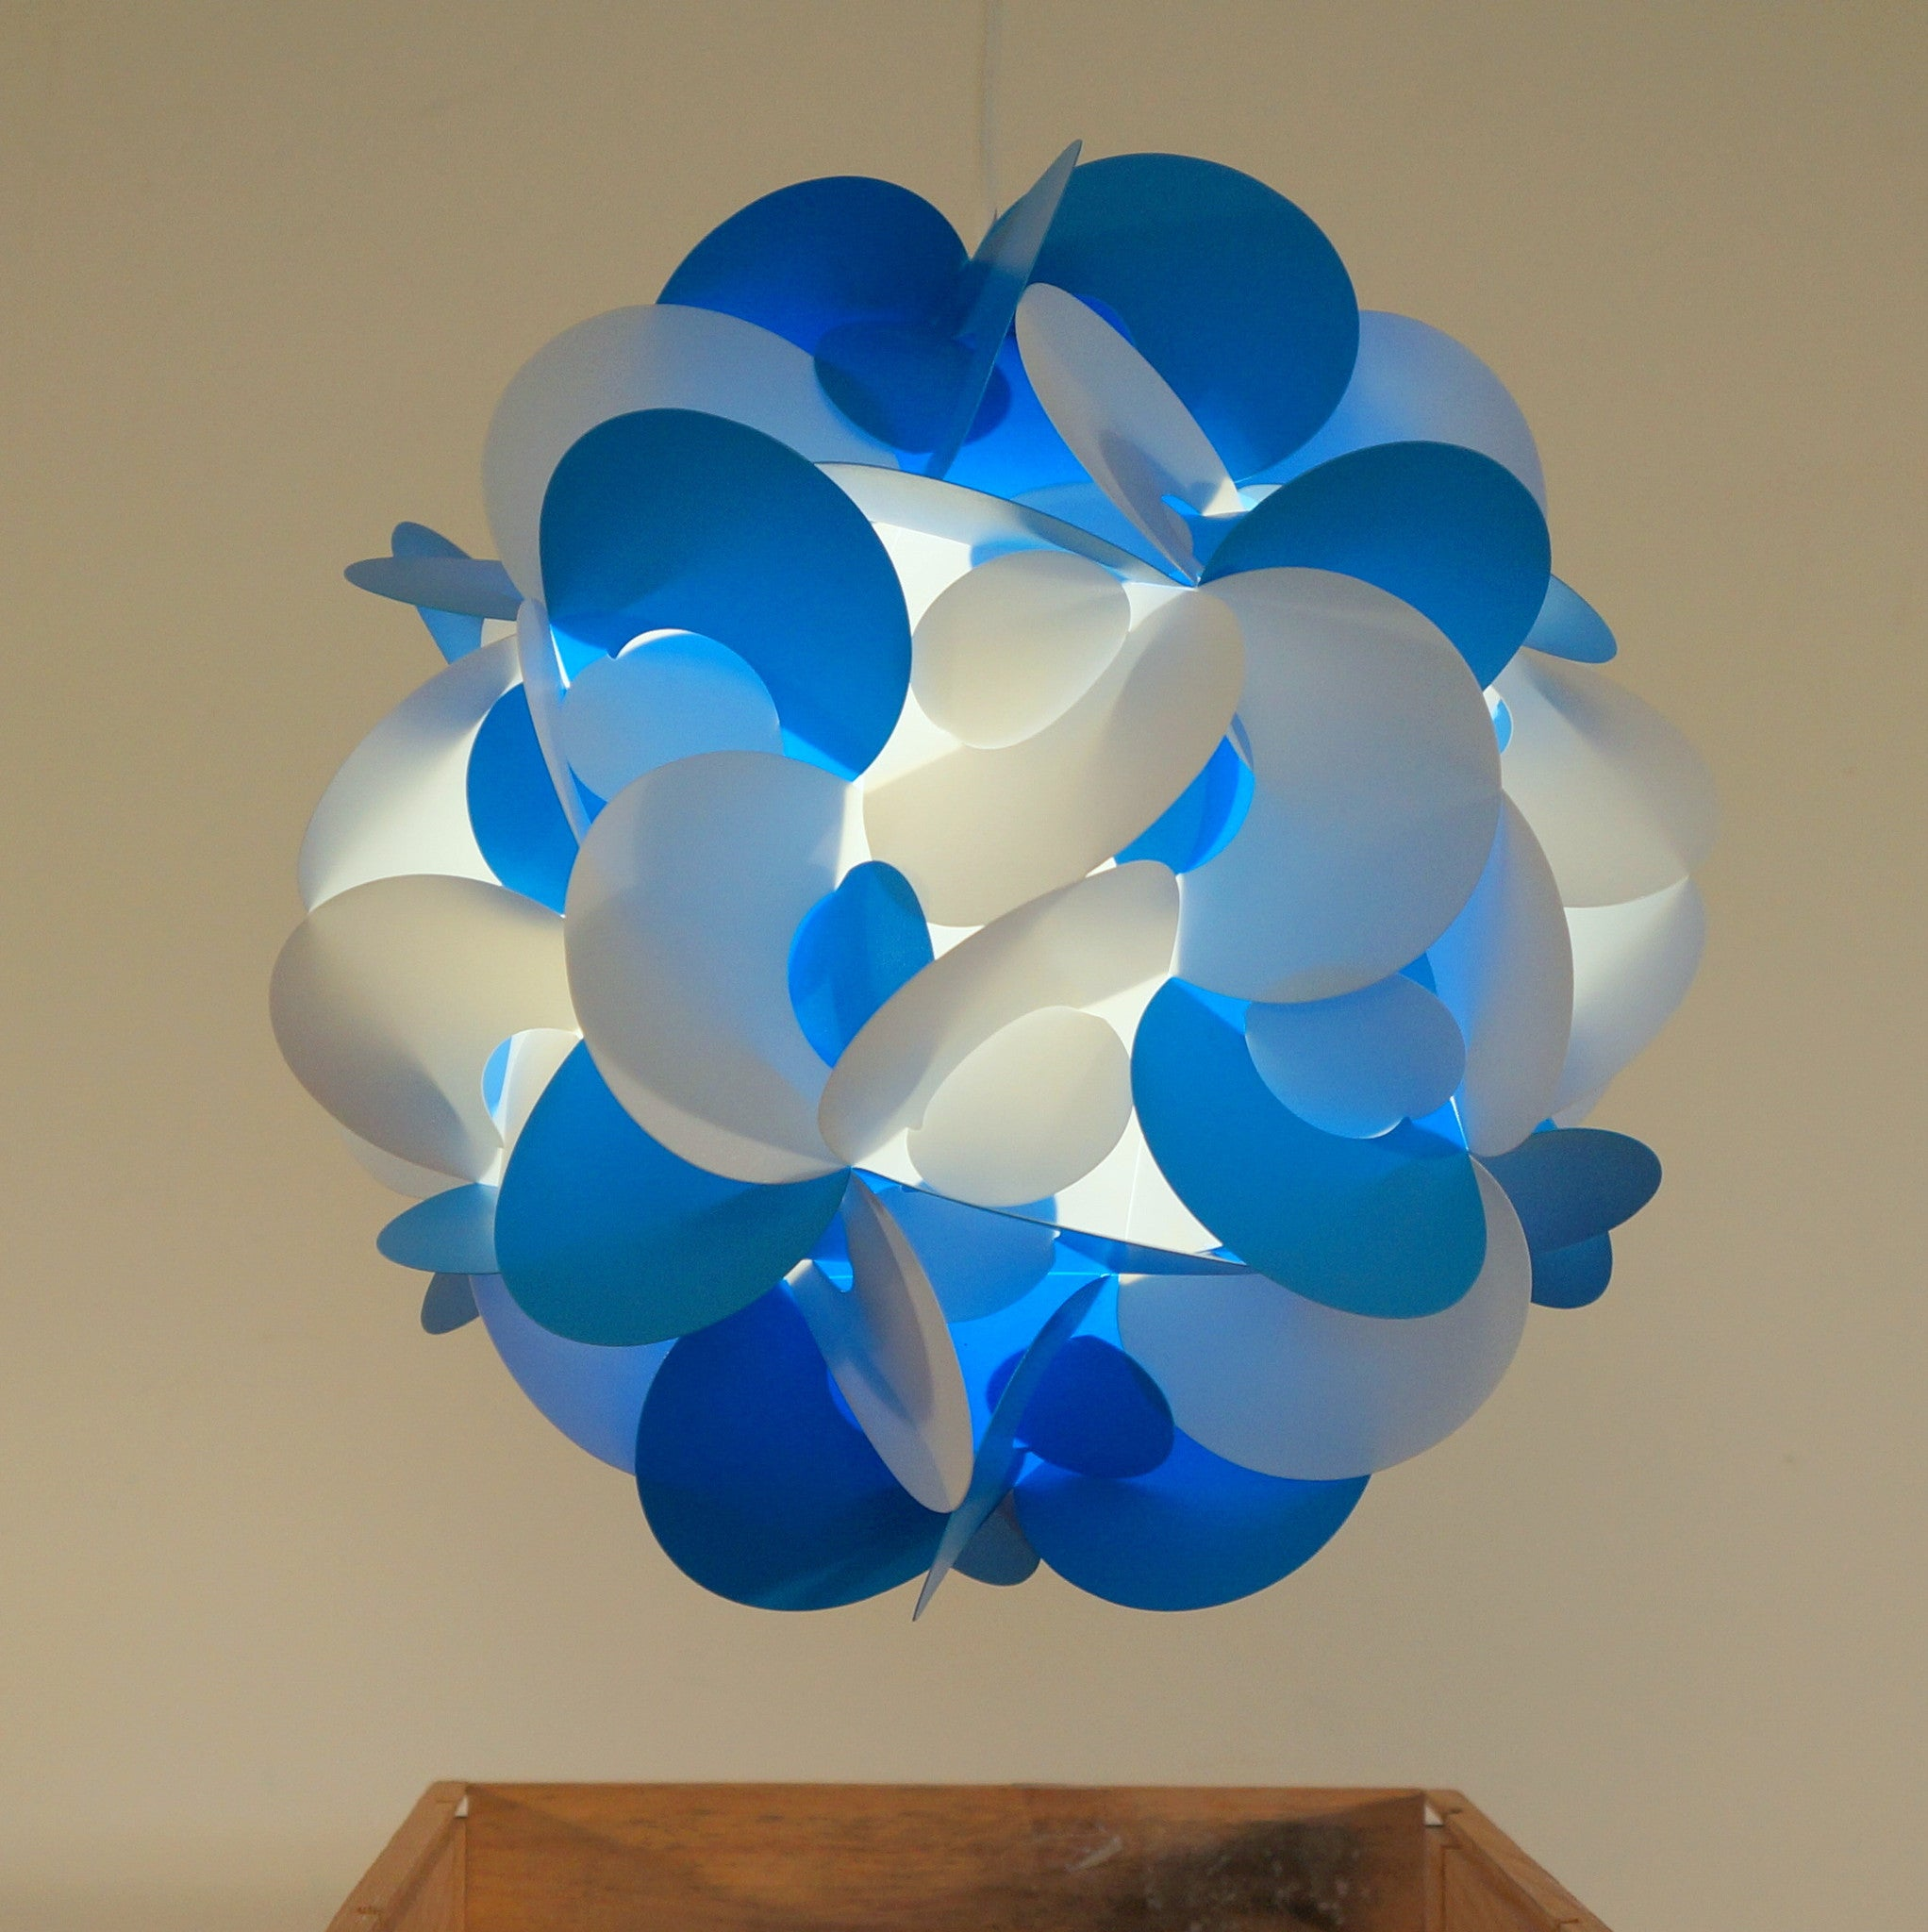 Curve Light Shade In Blue And White  Smart Deco Homeware Lighting and Art by Jacqueline hammond